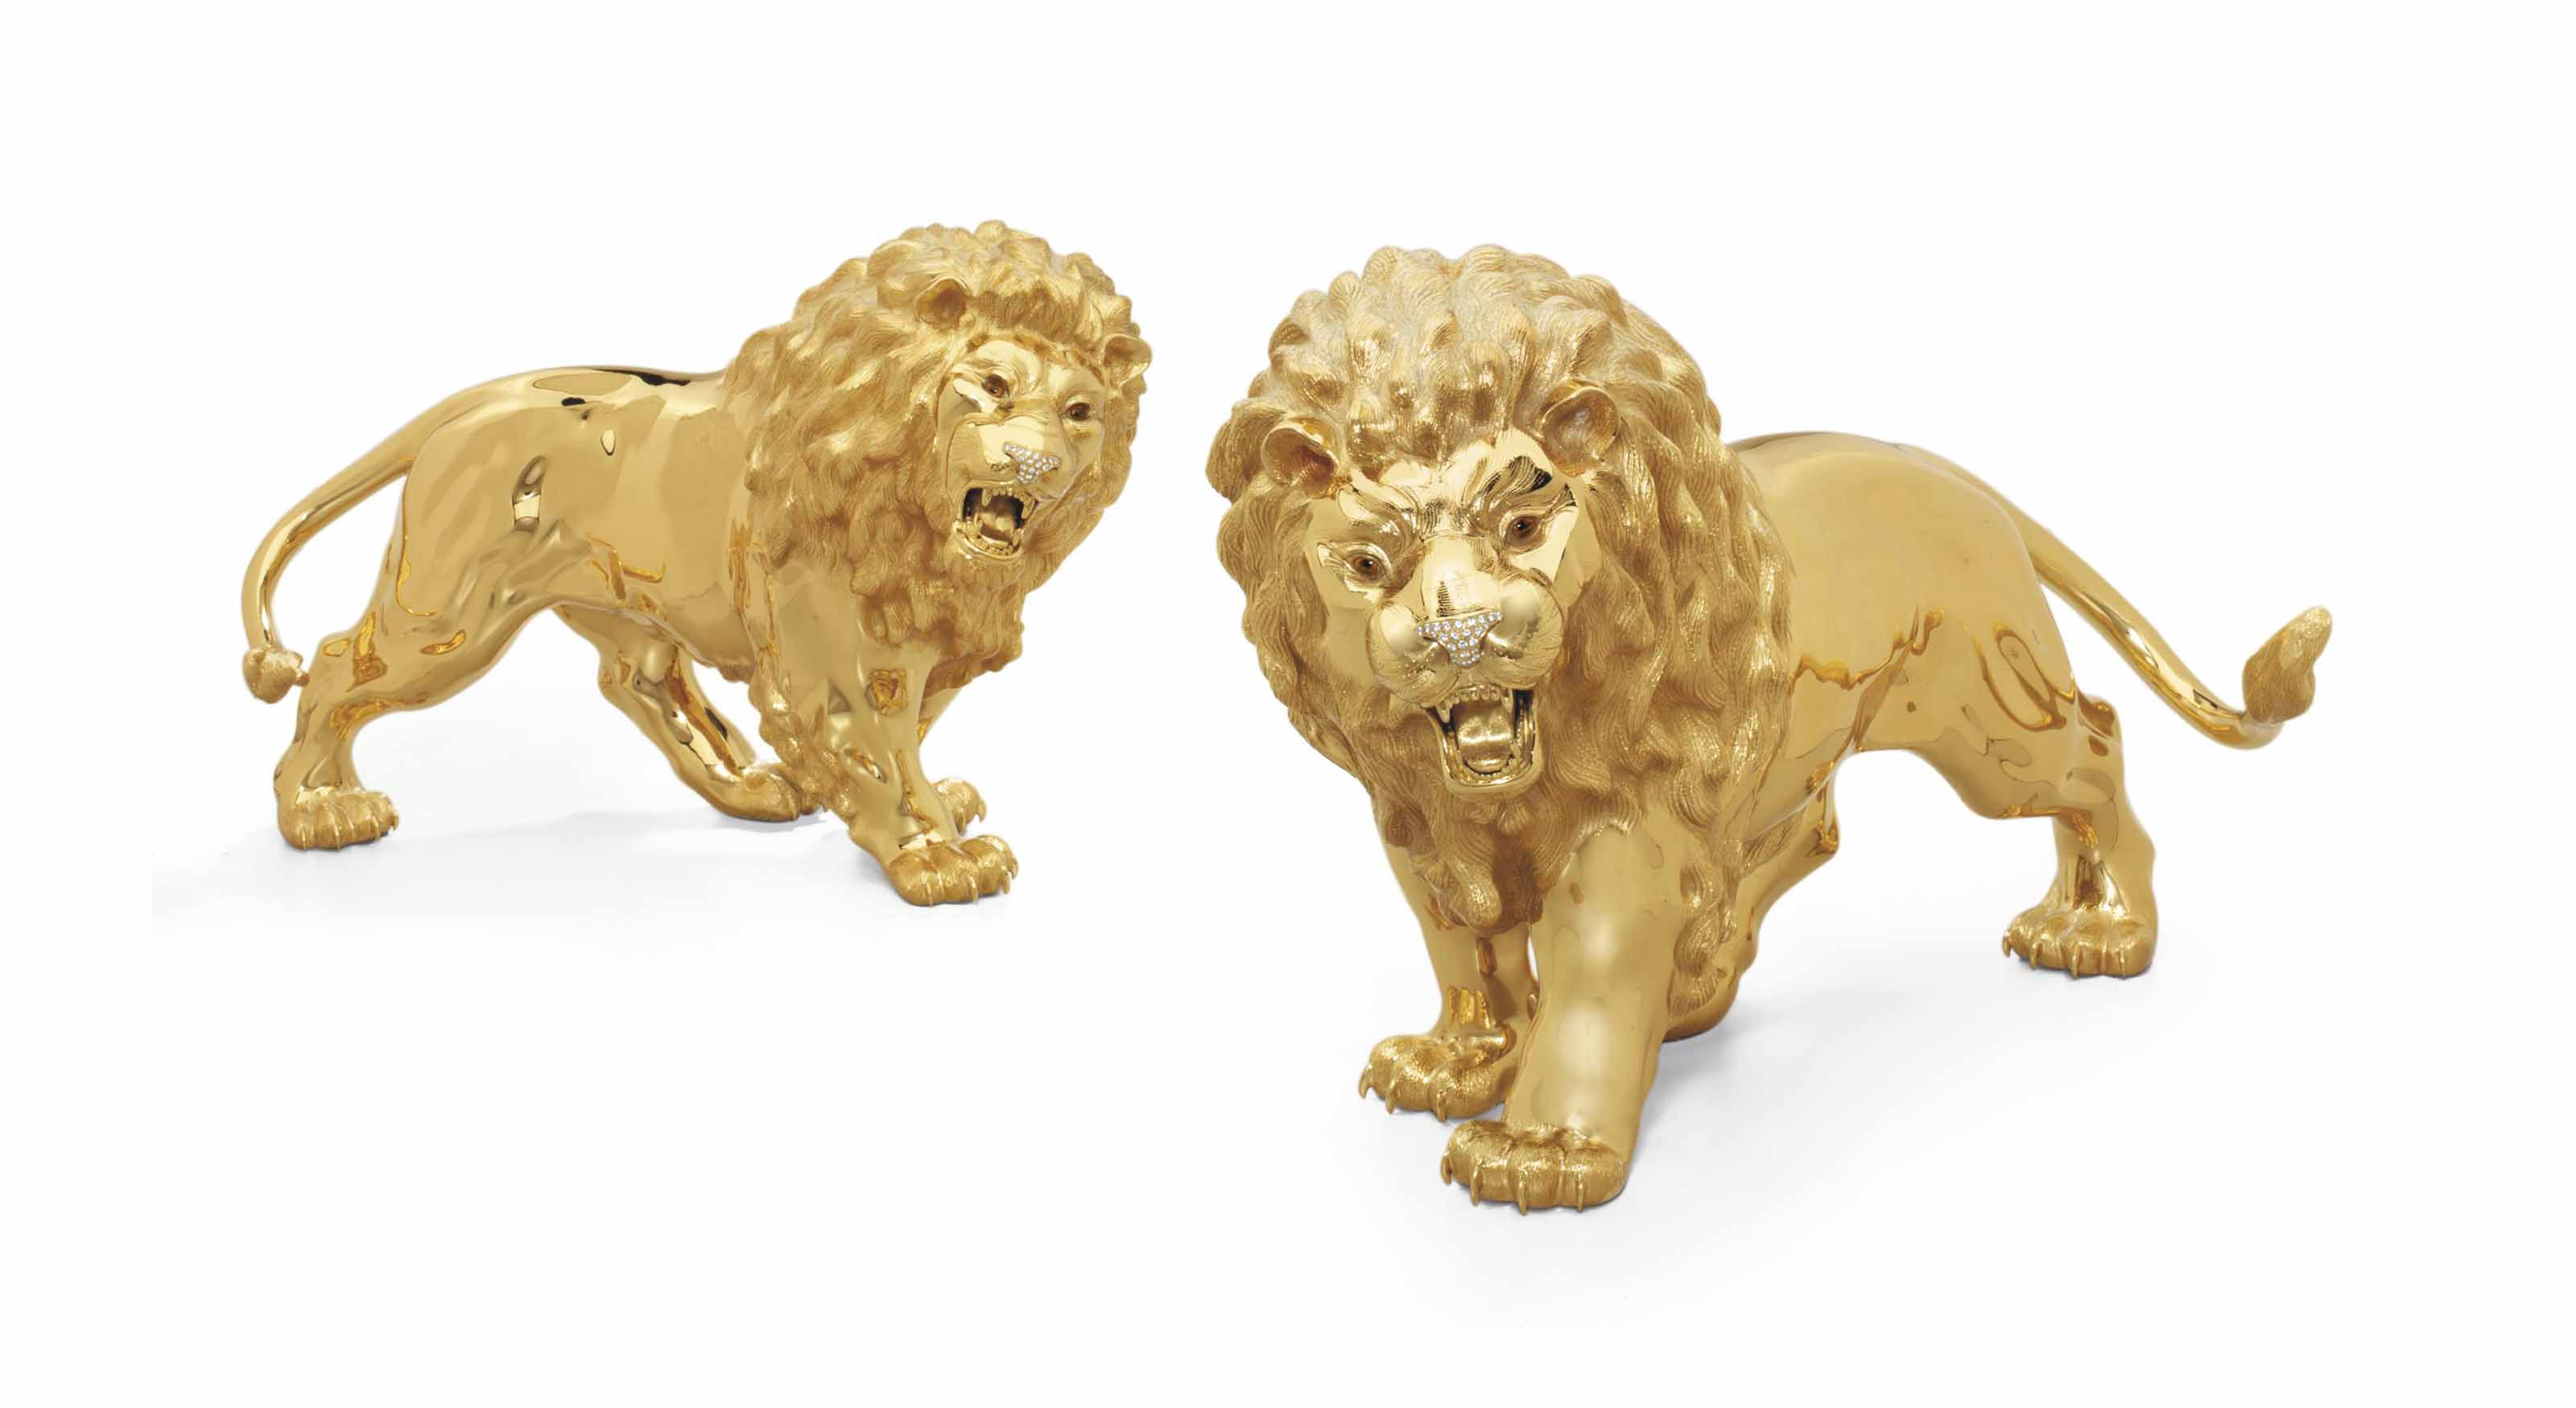 A PAIR OF LARGE SILVER-GILT AND GEM-SET LIONS